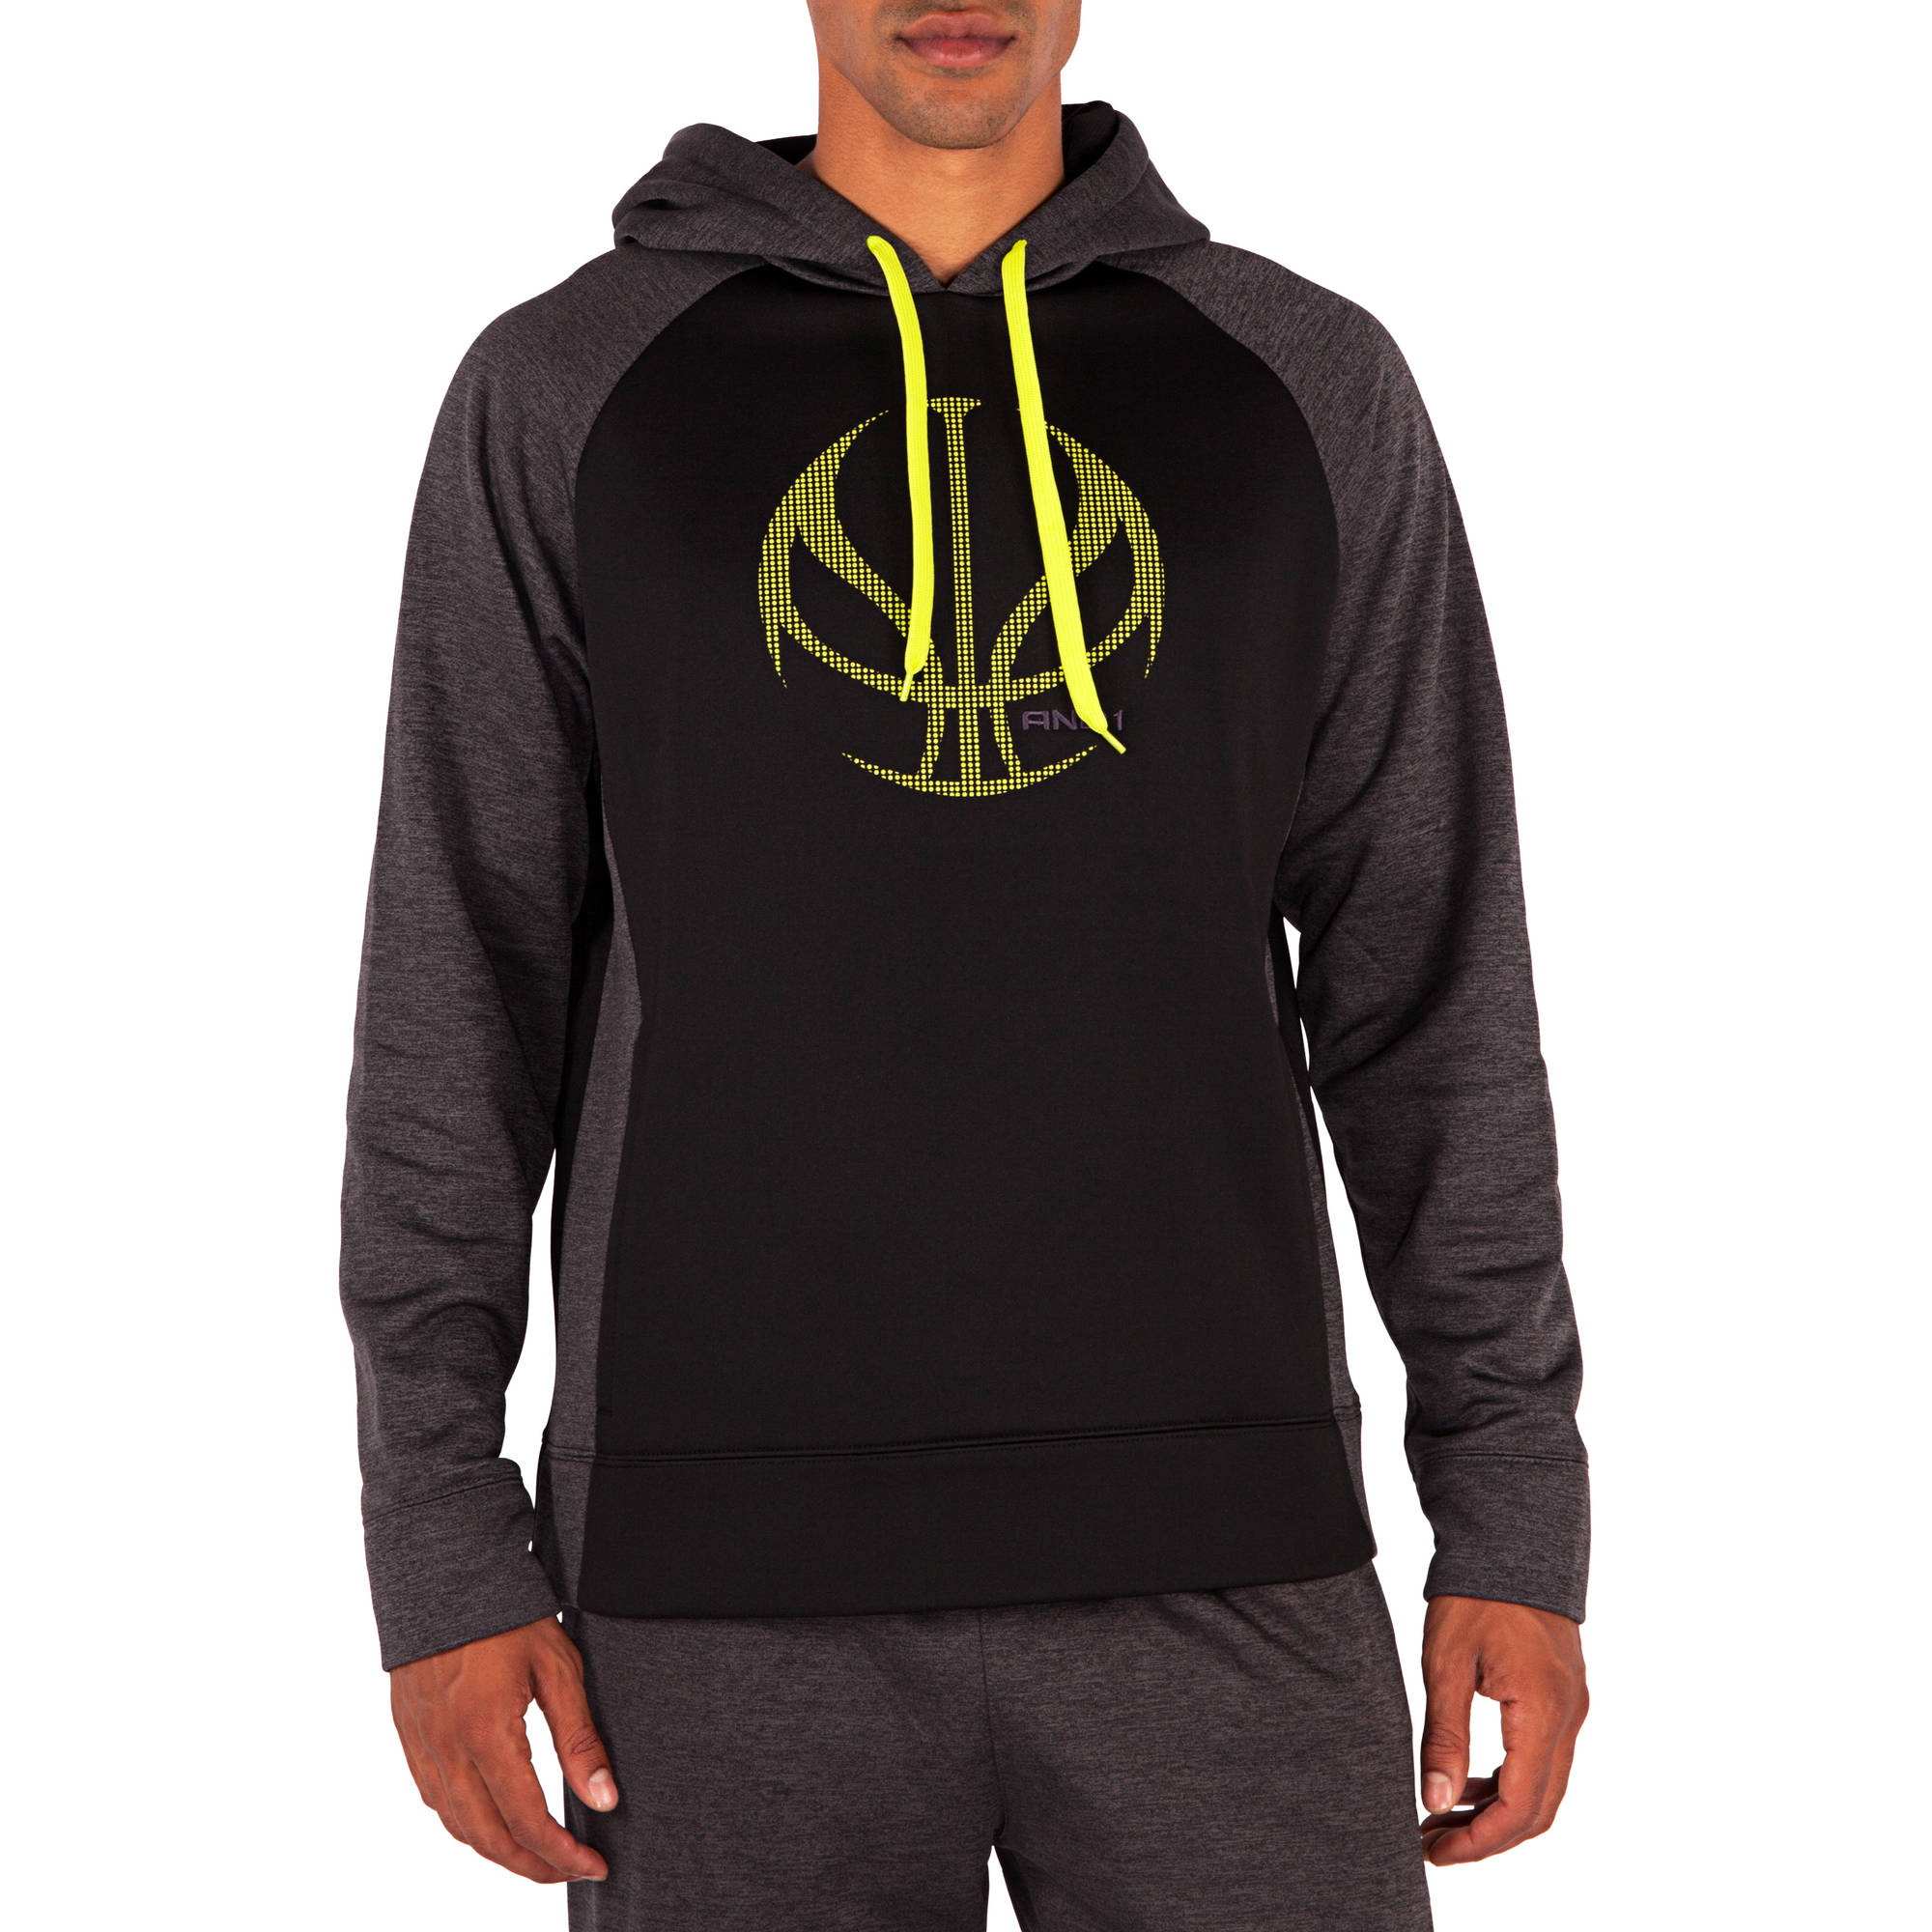 And1 Big Men's Showtime Performance Tech Hoodie